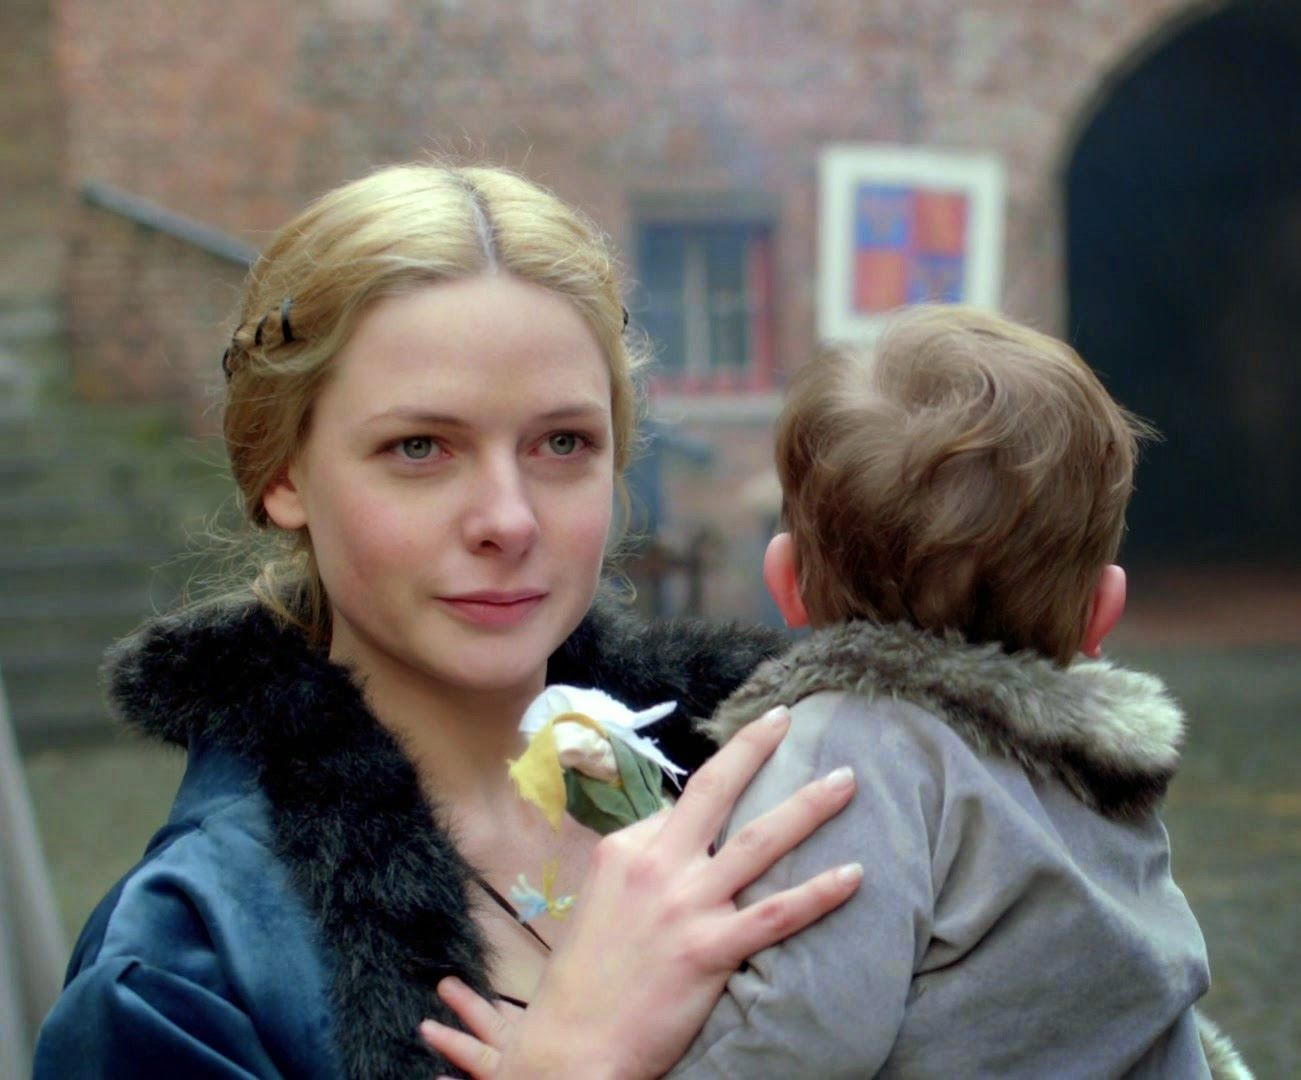 The White Queen - queen Elizabeth Woodville with son | The ...